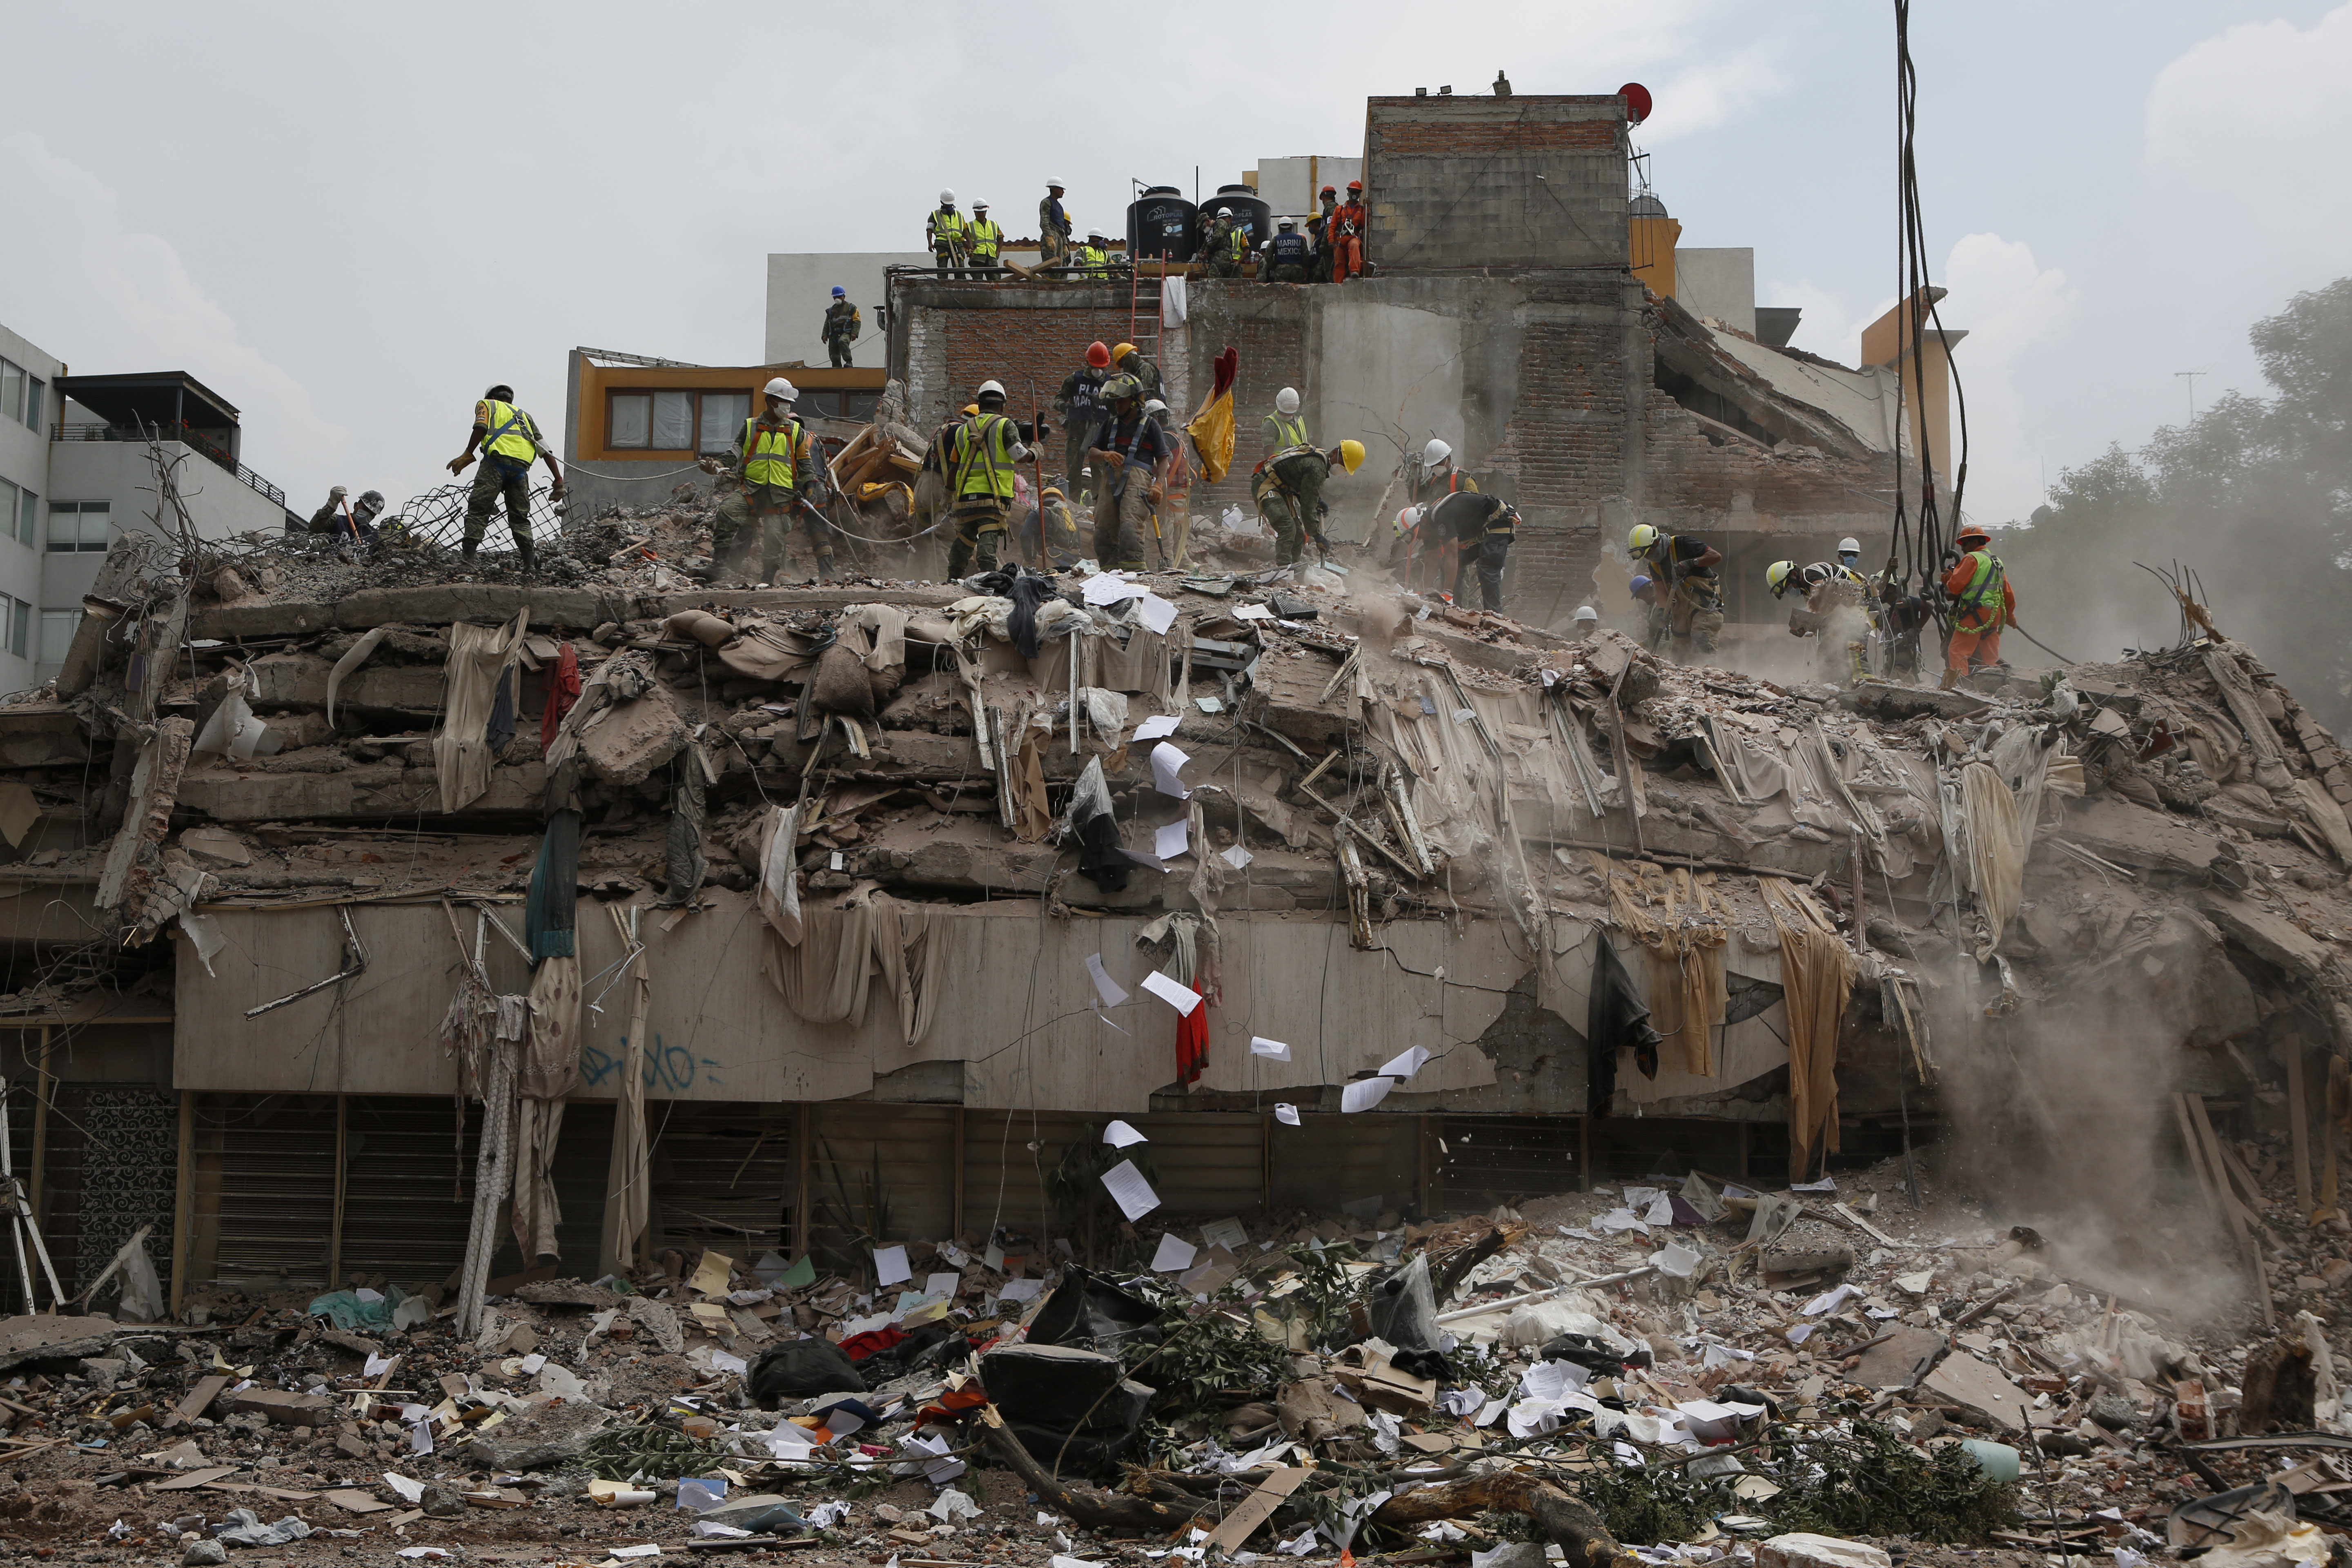 FILE - In this Sept. 25, 2017, file photo, workers shovel papers and debris off the top of the rubble of a building that collapsed in last week's 7.1 magnitude earthquake, at the corner of Gabriel Mancera and Escocia streets in the Del Valle neighborhood of Mexico City. The virus outbreak is compromising the ability of nations to prepare for natural disasters and deal with the aftermath. Every year, the world contends with devastating typhoons, wildfires, tsunamis and earthquakes. (AP Photo/Rebecca Blackwell, File)